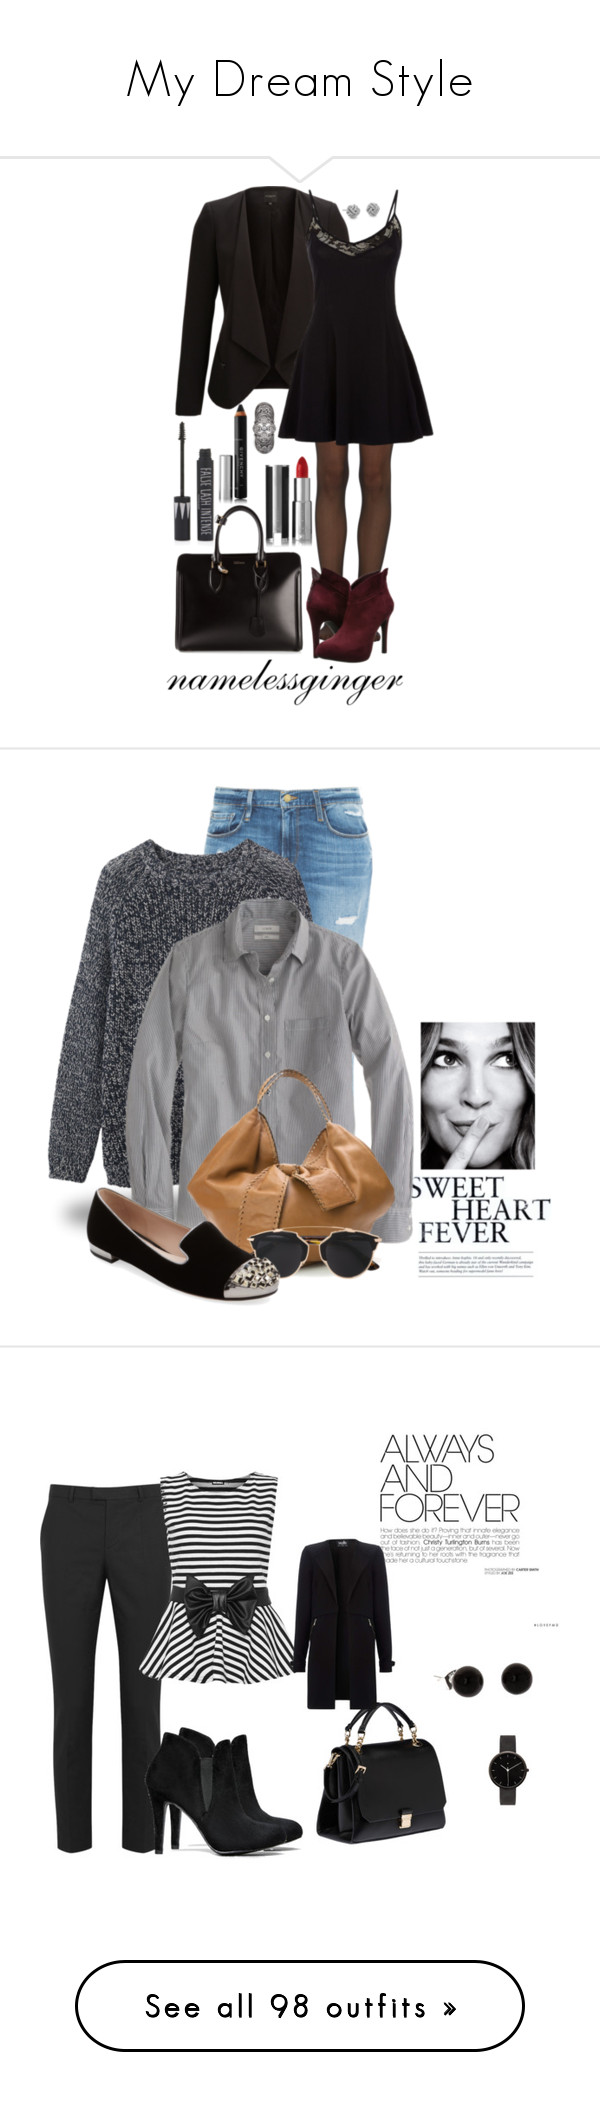 """""""My Dream Style"""" by anaevans11 ❤ liked on Polyvore featuring SELECTED, Wolford, Jessica Simpson, Givenchy, Topshop, Alexander McQueen, Blue Nile, BCBGMAXAZRIA, skirts and bottoms"""